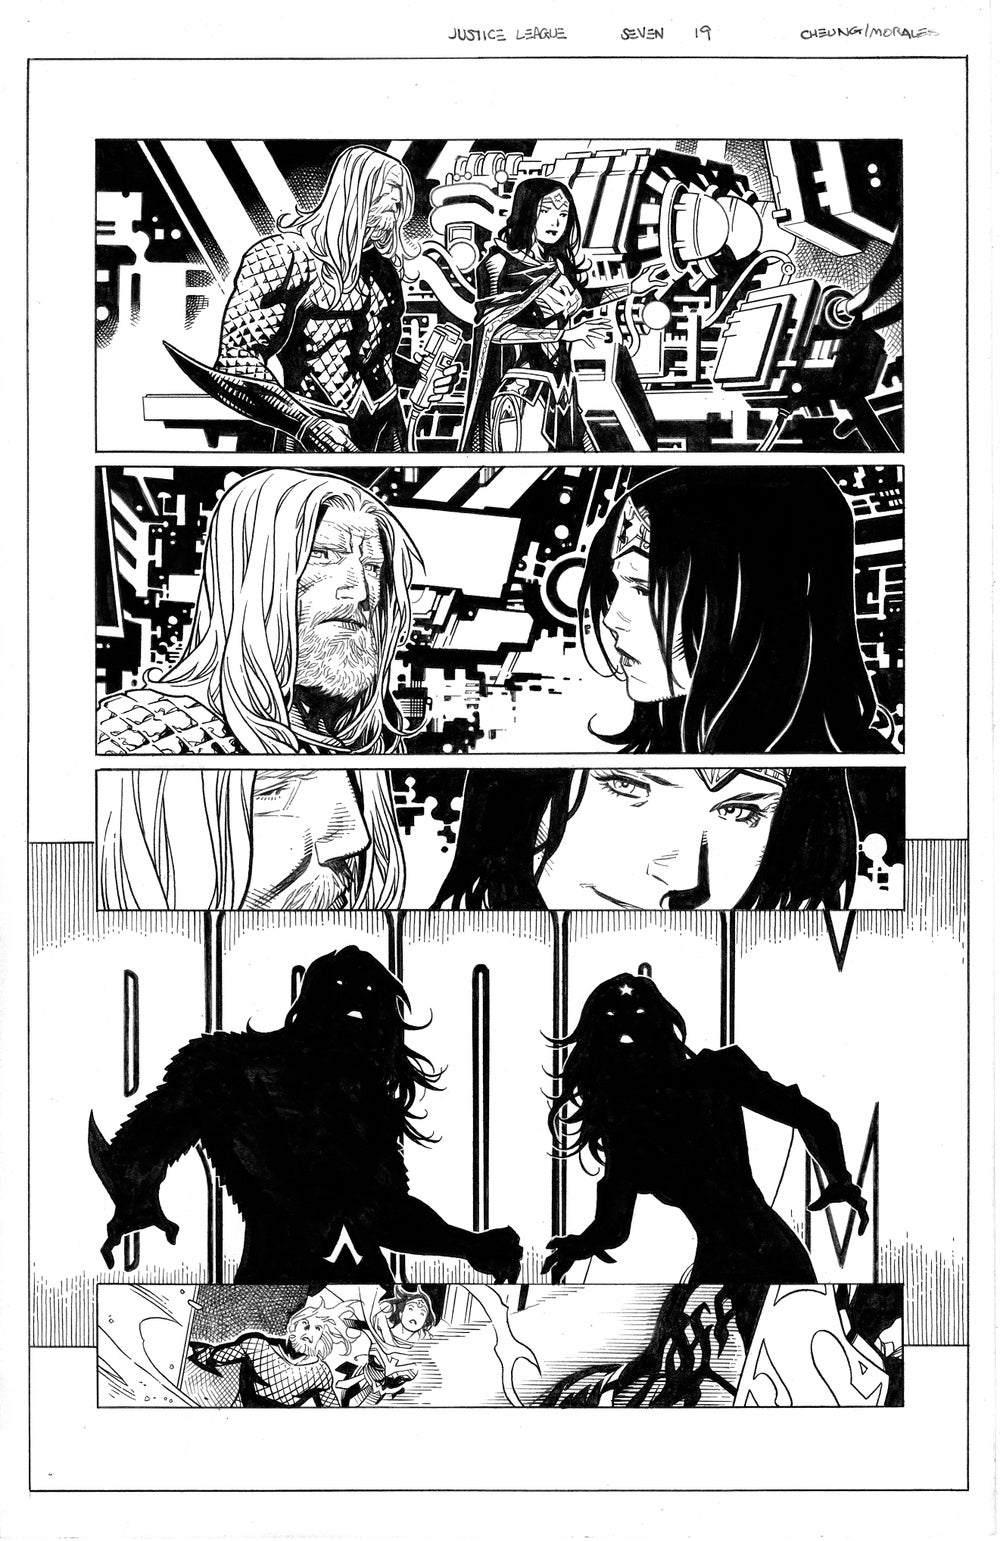 Image of JUSTICE LEAGUE #7 Page 19